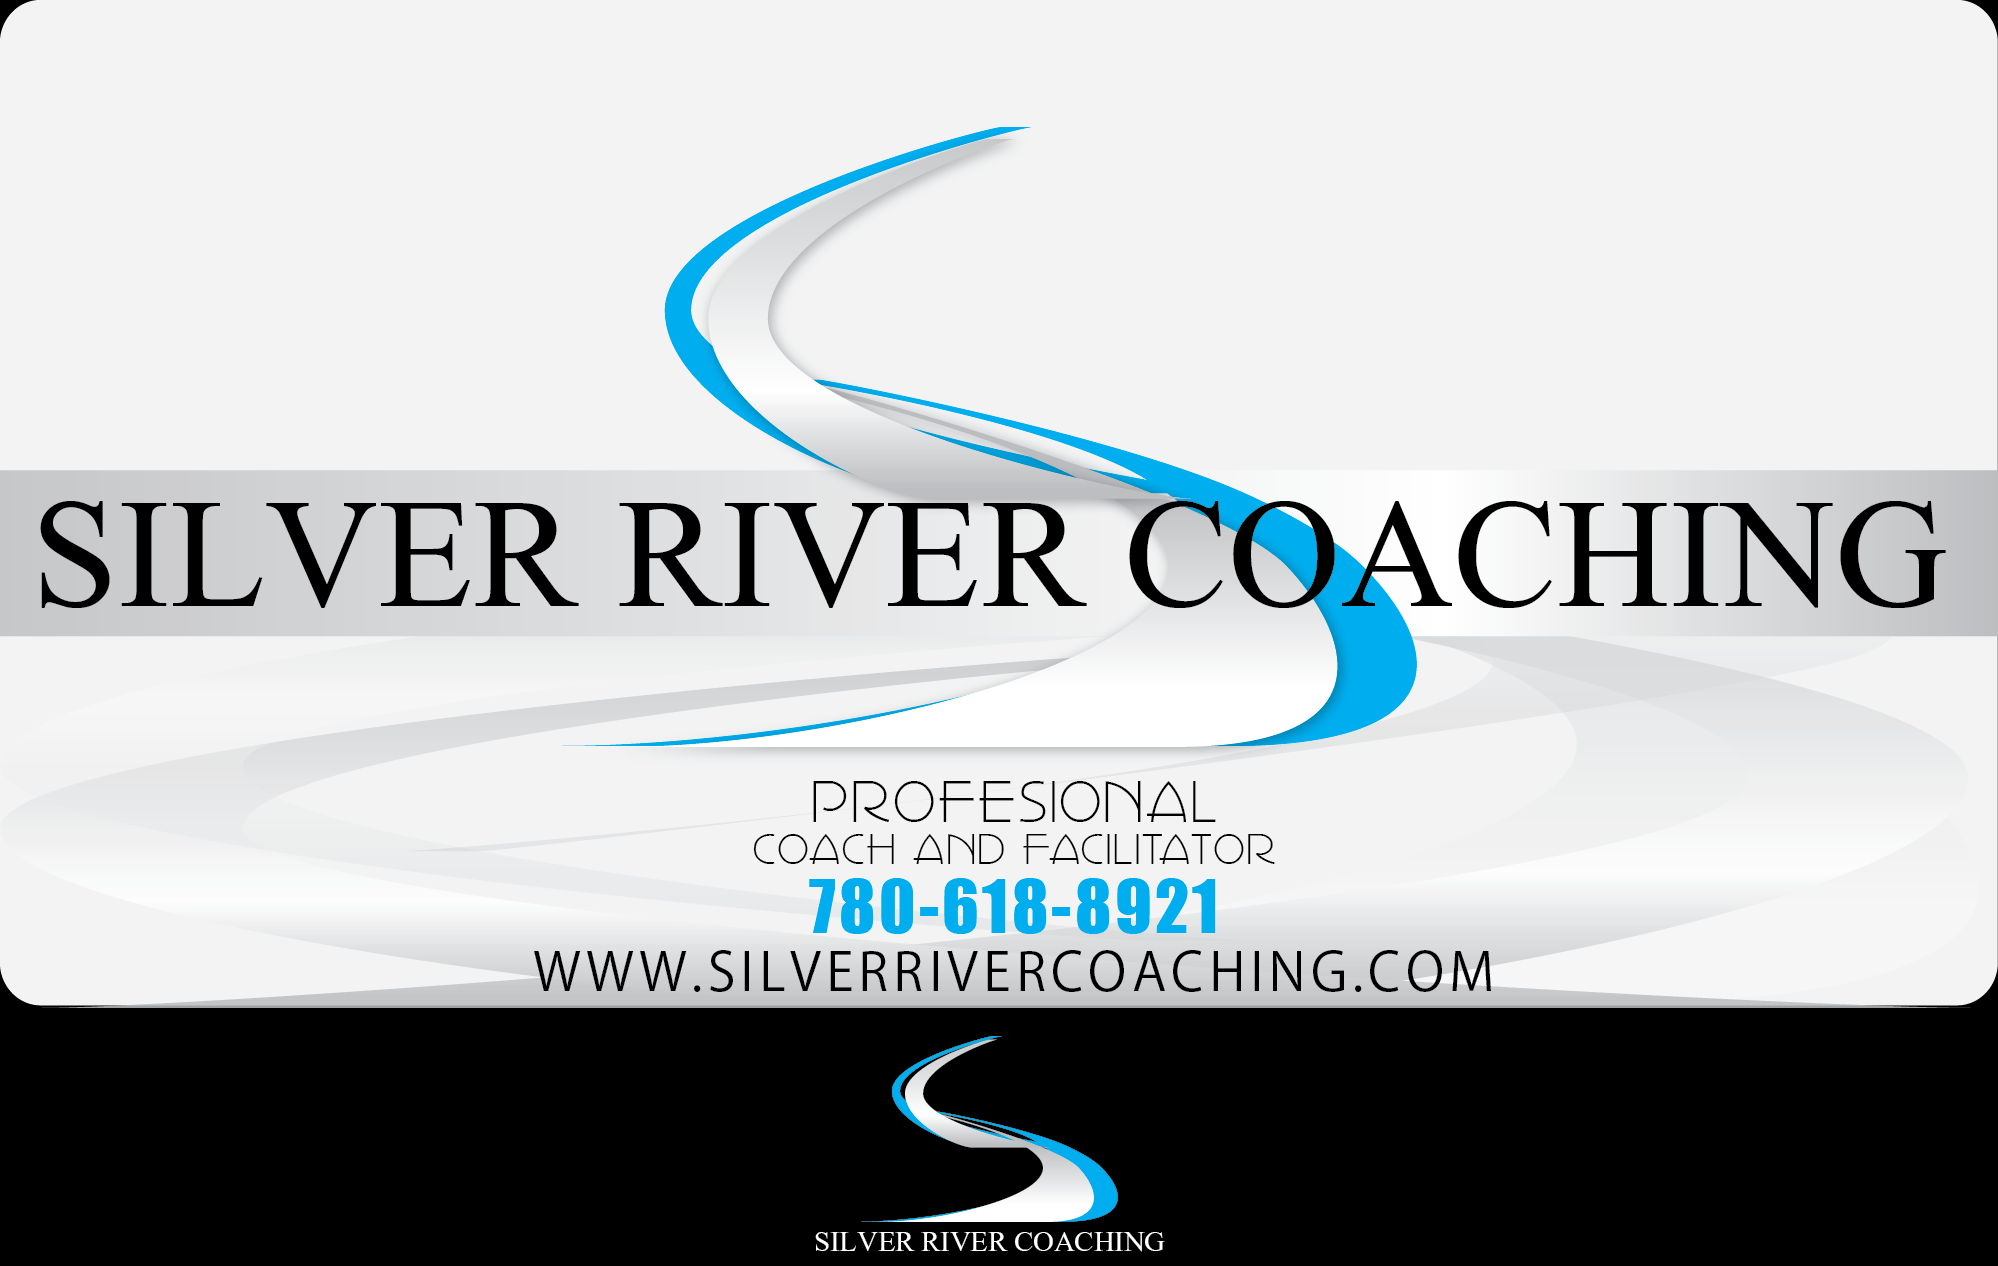 Logo Design by Md Iftekharul Islam Pavel - Entry No. 153 in the Logo Design Contest Logo Design Needed for Exciting New Company Silver River Coaching.